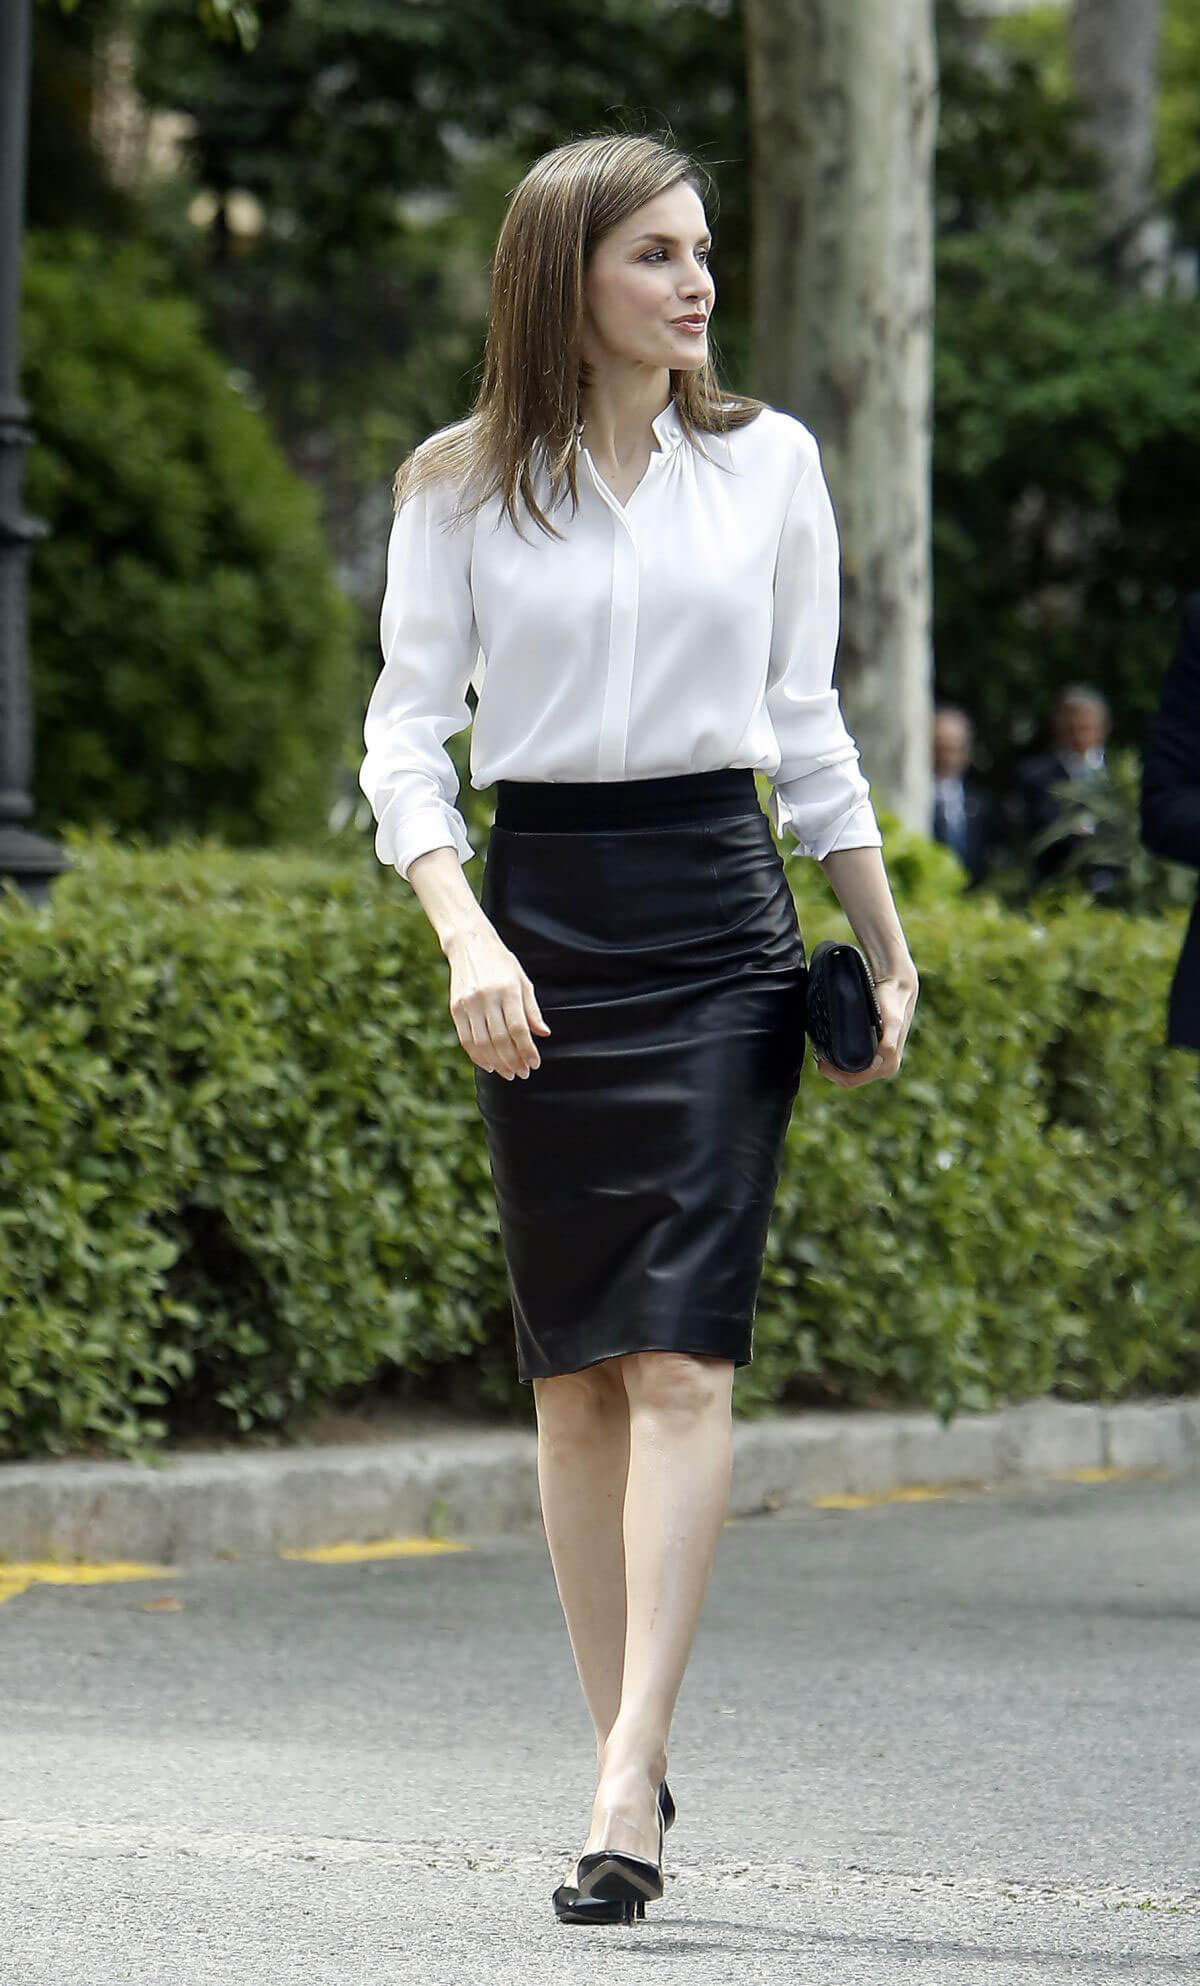 Queen Letizia Of Spain Arrives at National Library in ... Priyanka Chopra 2017 May